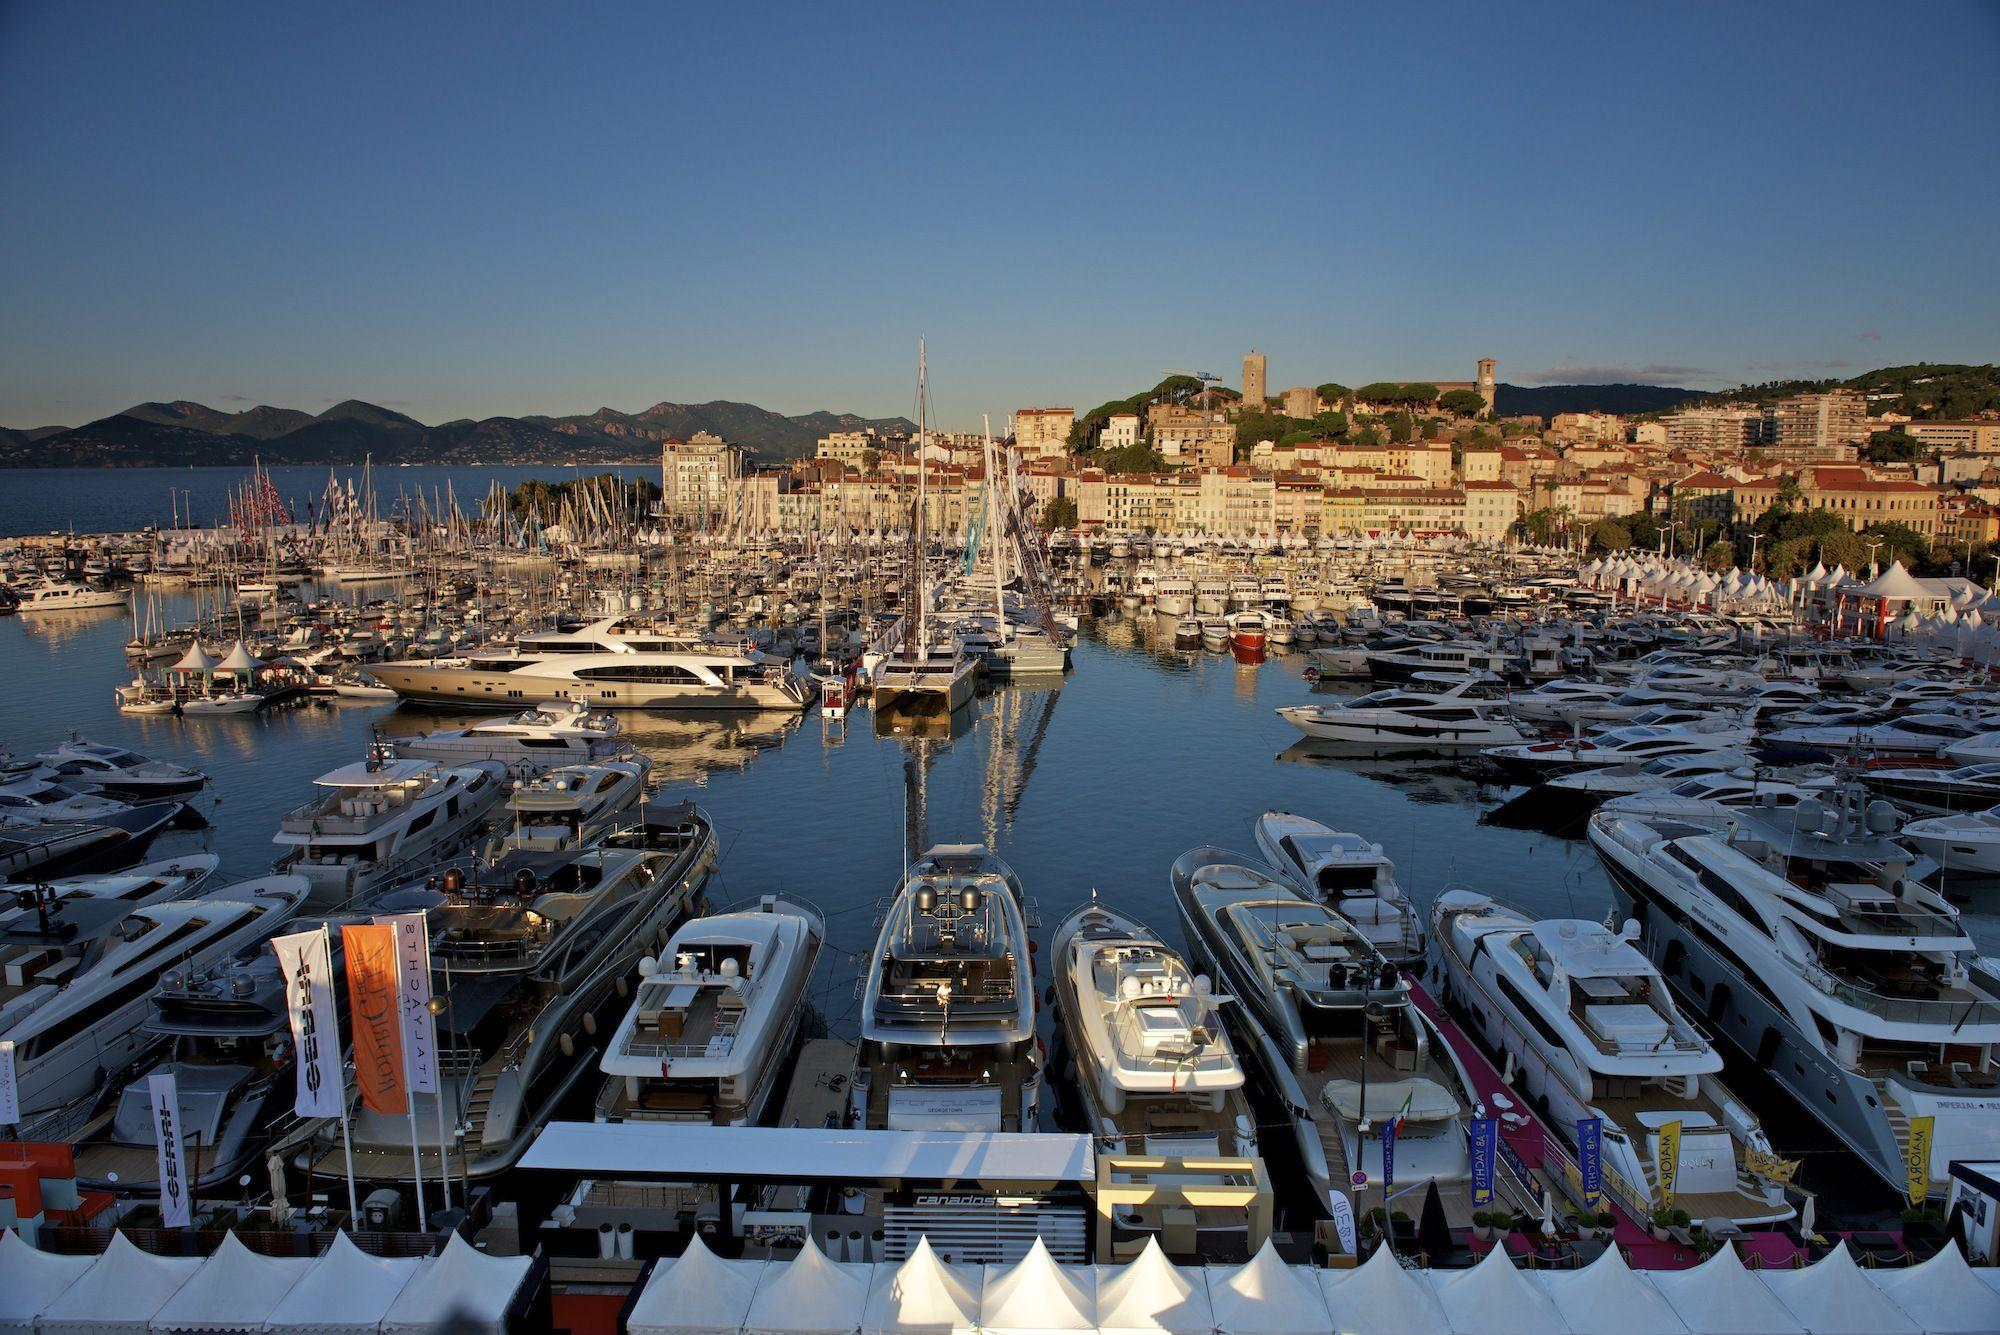 Boats in the port of Cannes, France wallpapers and image